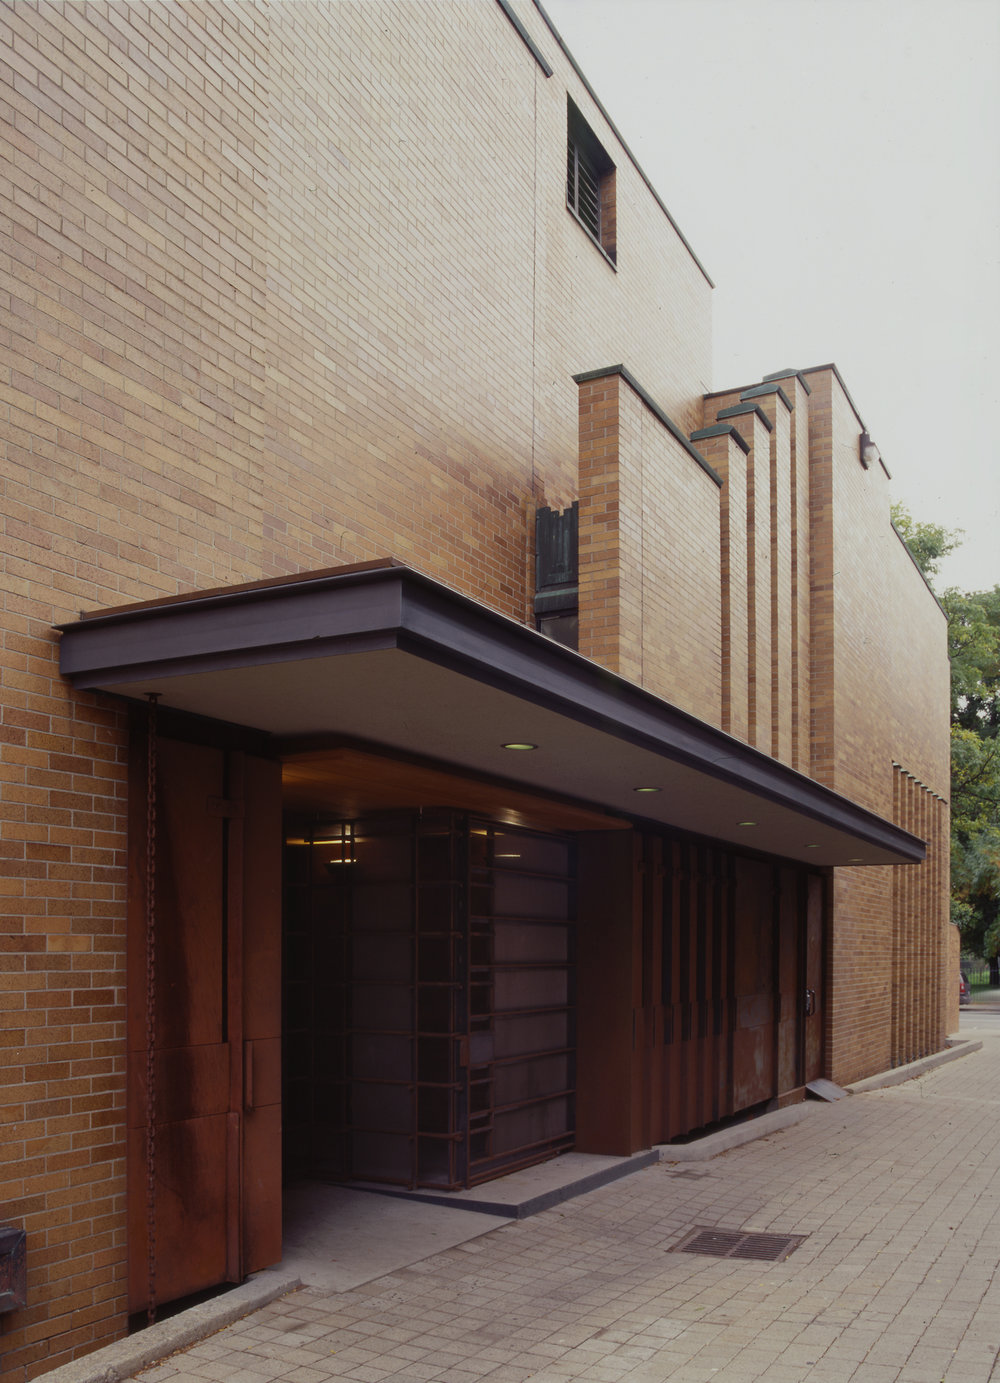 Massey College Exterior Front Entrance